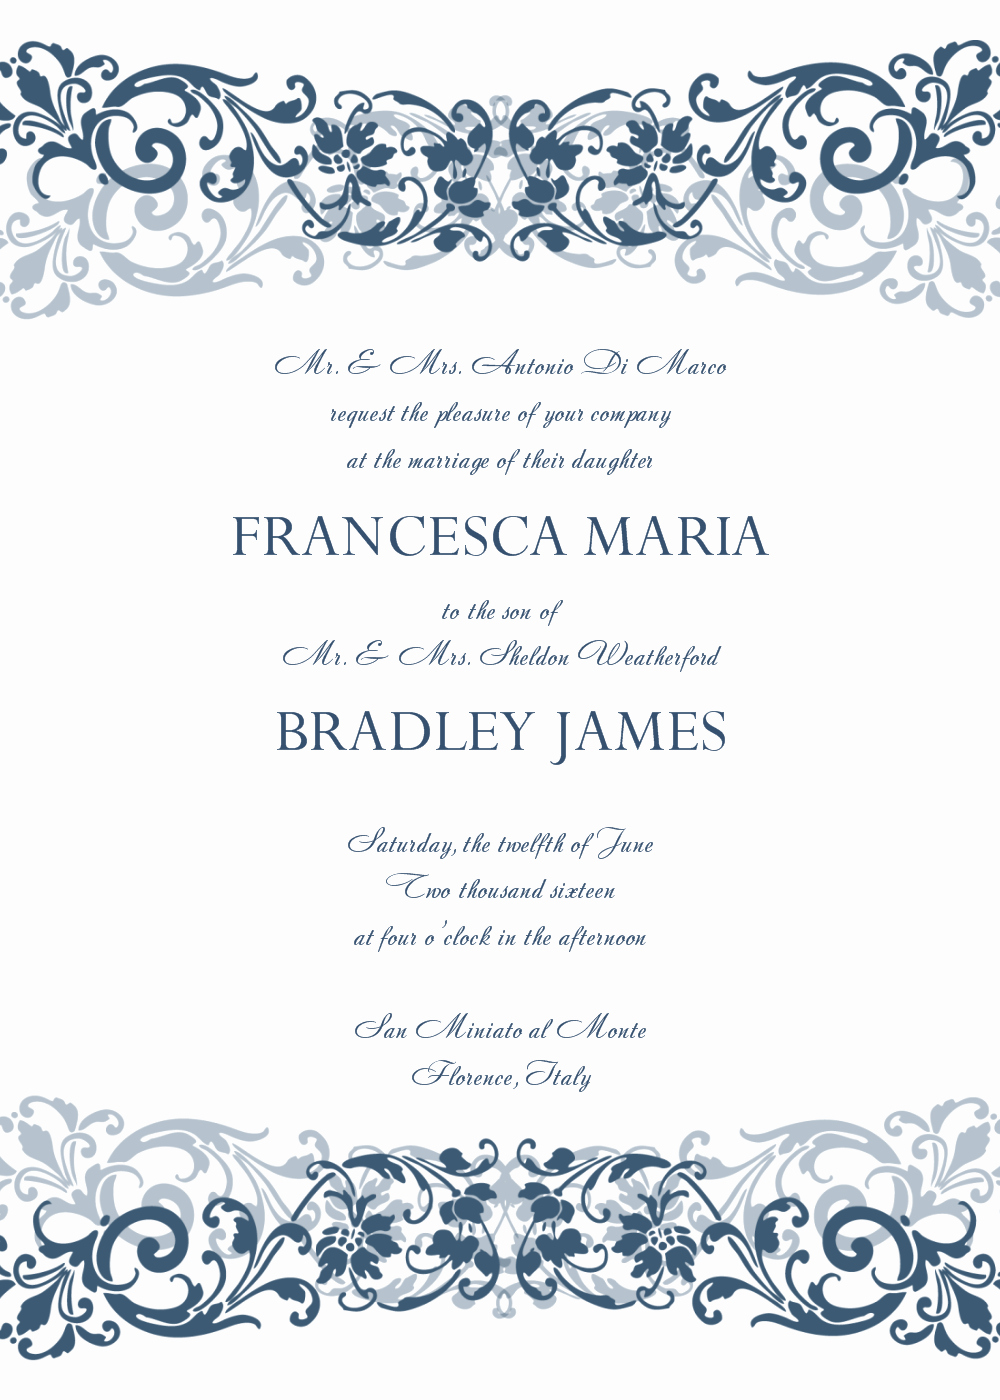 Free Engagement Party Invitation Template New 8 Free Wedding Invitation Templates Excel Pdf formats